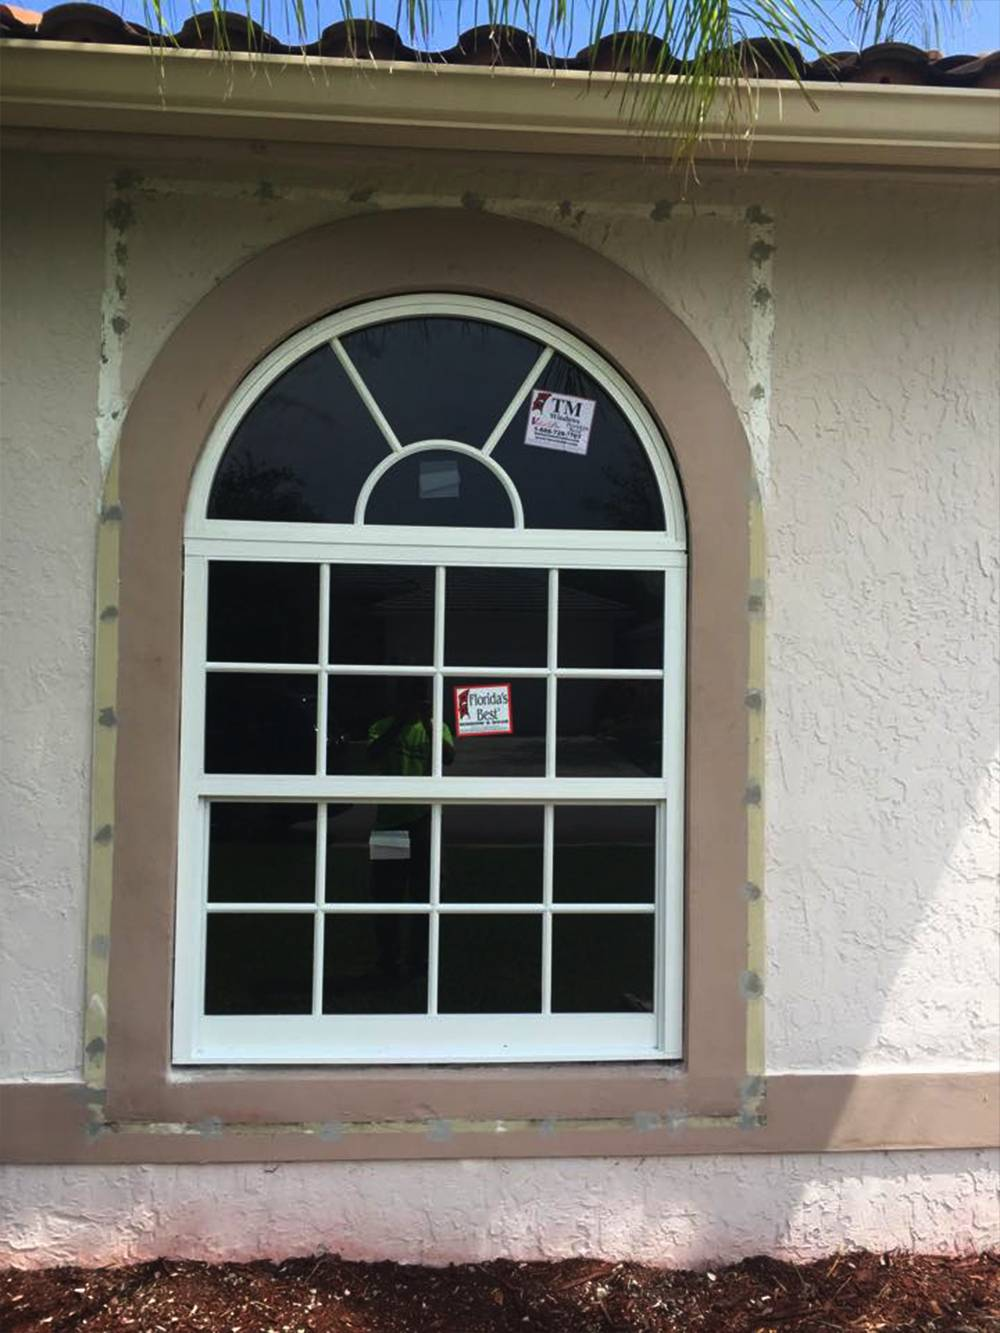 Window Replacement Parkland  Ediss Remodeling Company. Life Settlement Industry Hiv Infection Causes. Investment Real Estate Loans. Stellar Phoenix Data Recovery Key. Air Conditioning Service Richardson Tx. No Deposit Bank Account Sharing Car Insurance. Top International Affairs Schools. Dish Network Salinas Ca Atlanta Dui Attorneys. Loyal Insurance Company Rewards Points Program